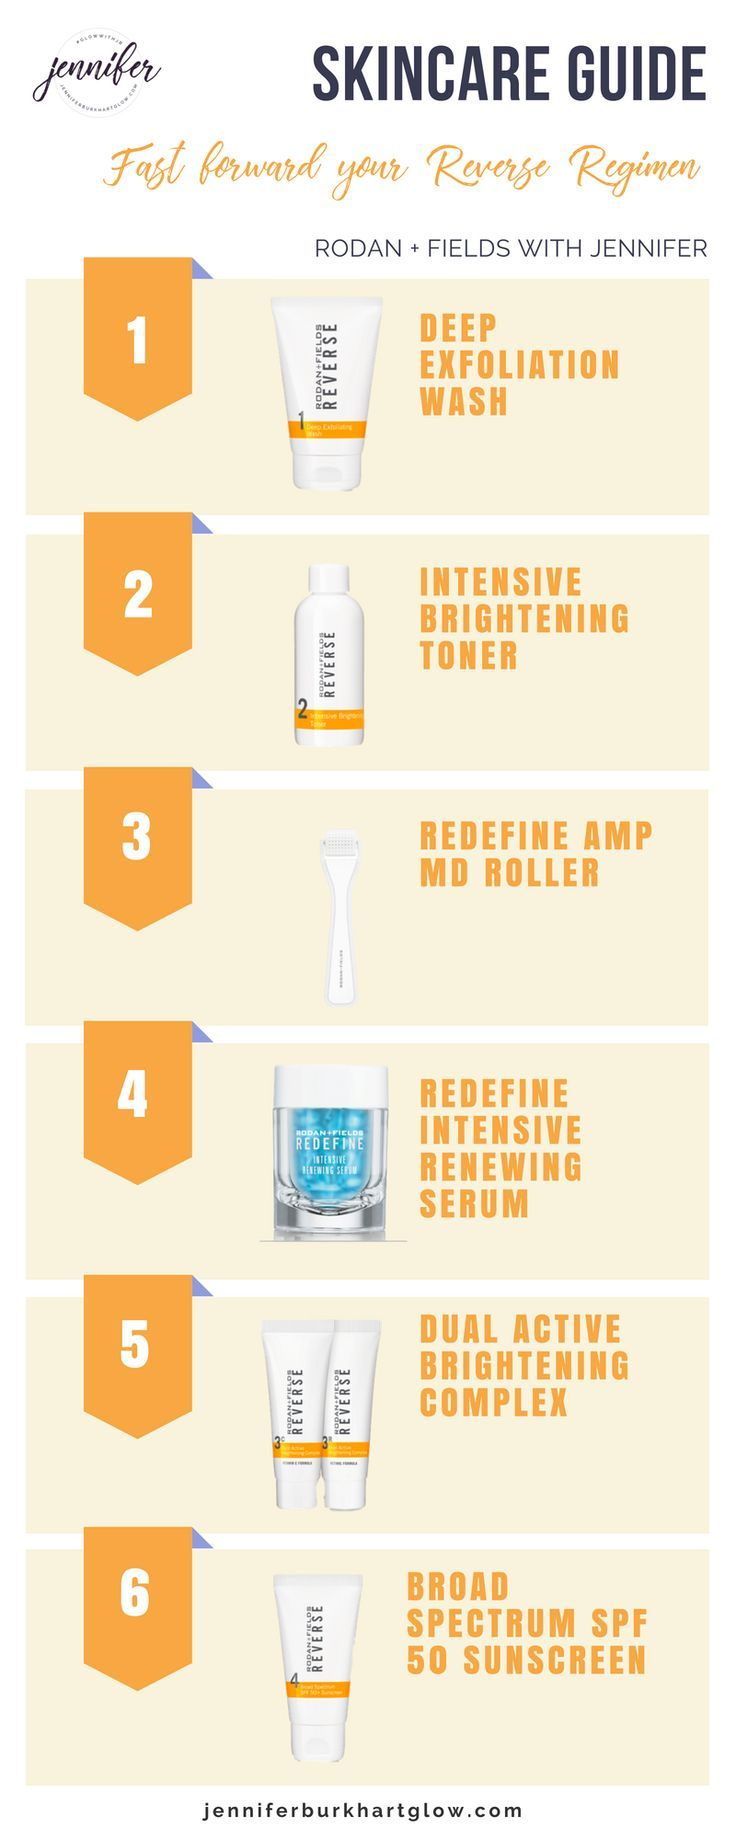 Jennifer Burkhart | Glow with me Fast forward your Reverse Regimen… Check out my SKINCARE GUIDE .. After you have used REVERSE twice daily, you are ready to ramp it by incorporating the AMP MD roller and Intensive Renewing Serum to increase your results up to 54% faster. #GlowwithJB #Reverse #RodanandFields #antiaging